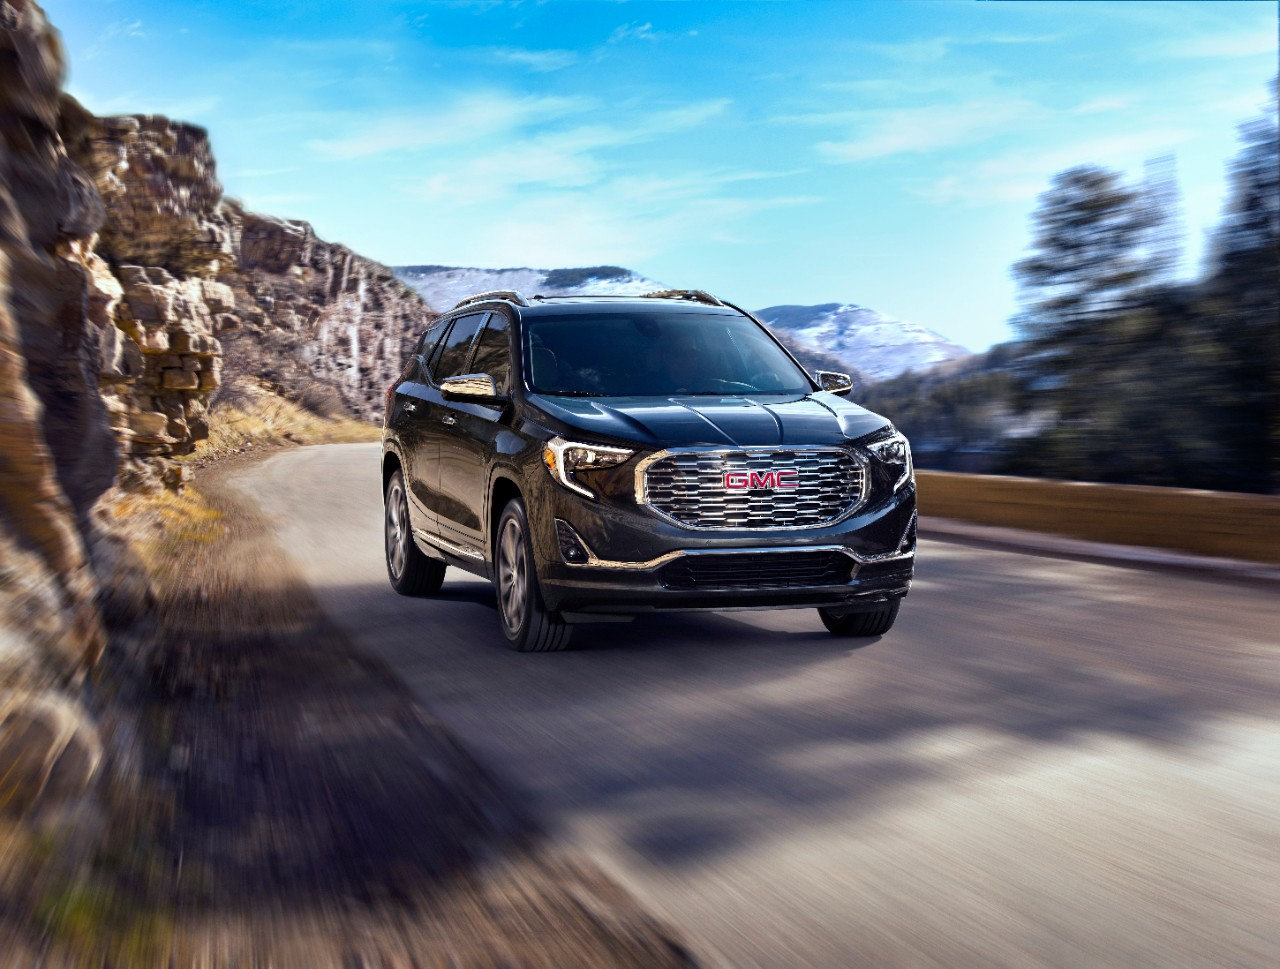 Best GMC Terrain Tires